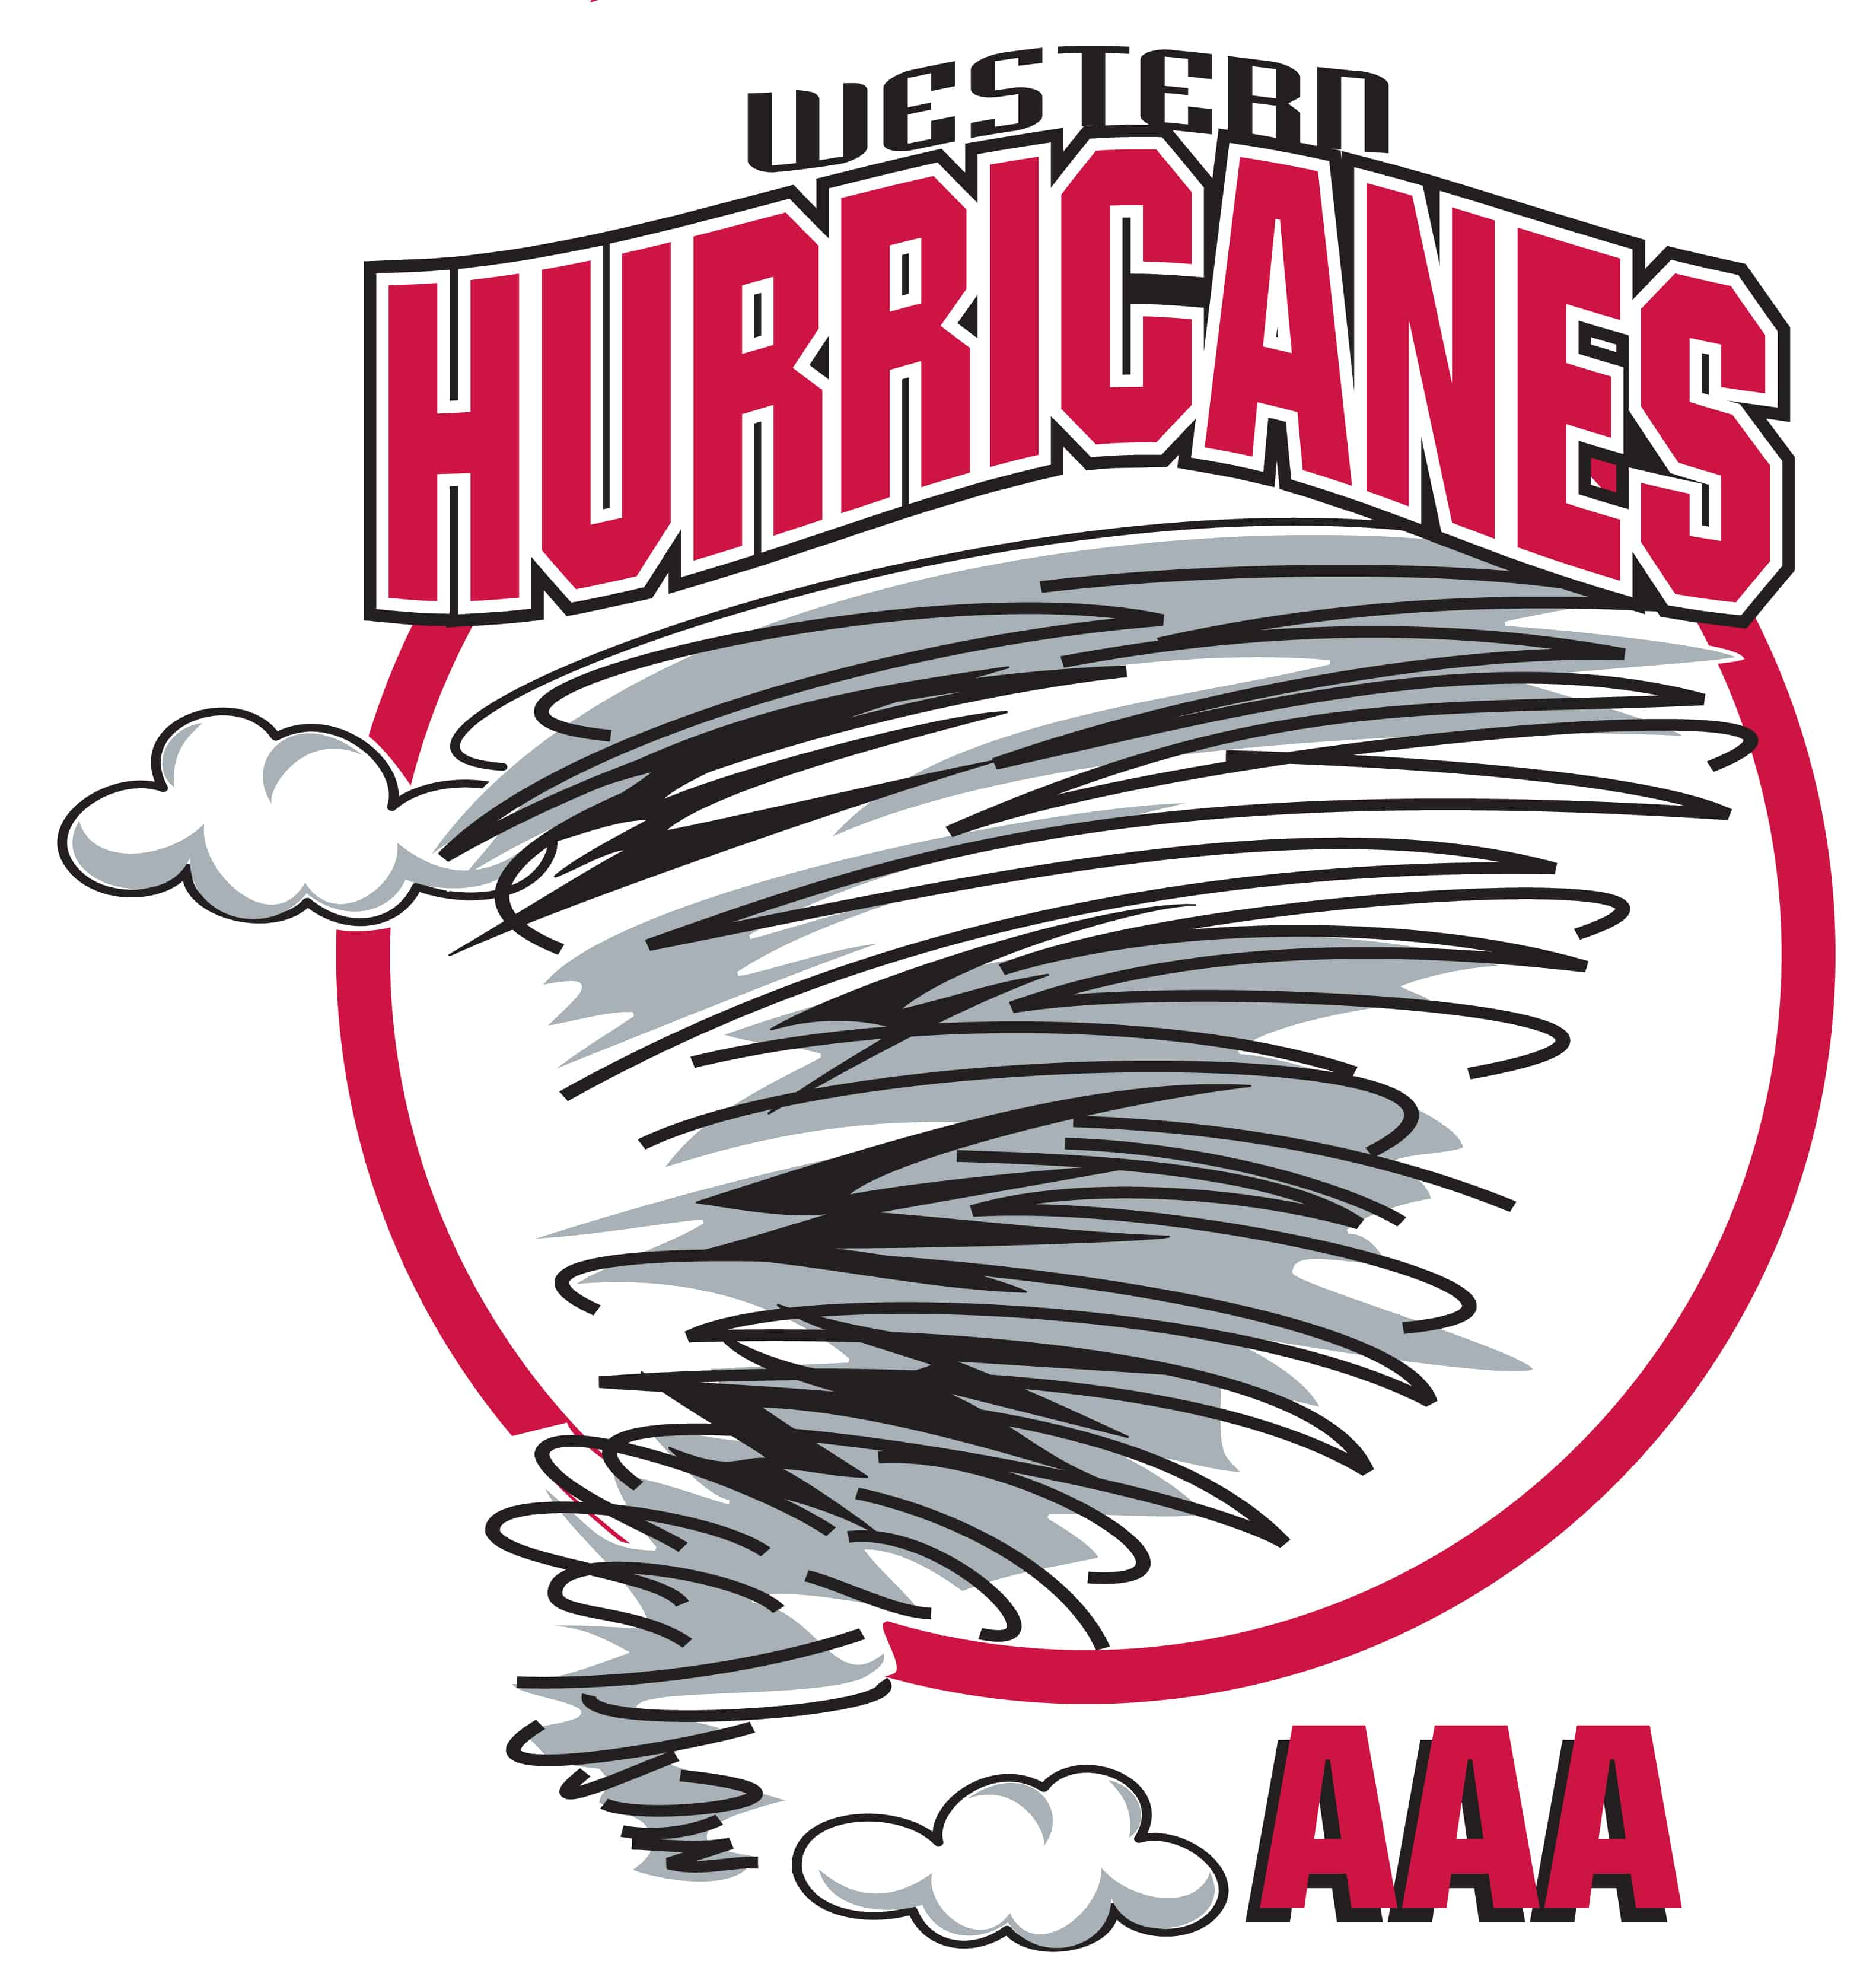 Western Hurricanes Atlantic Hockey Group